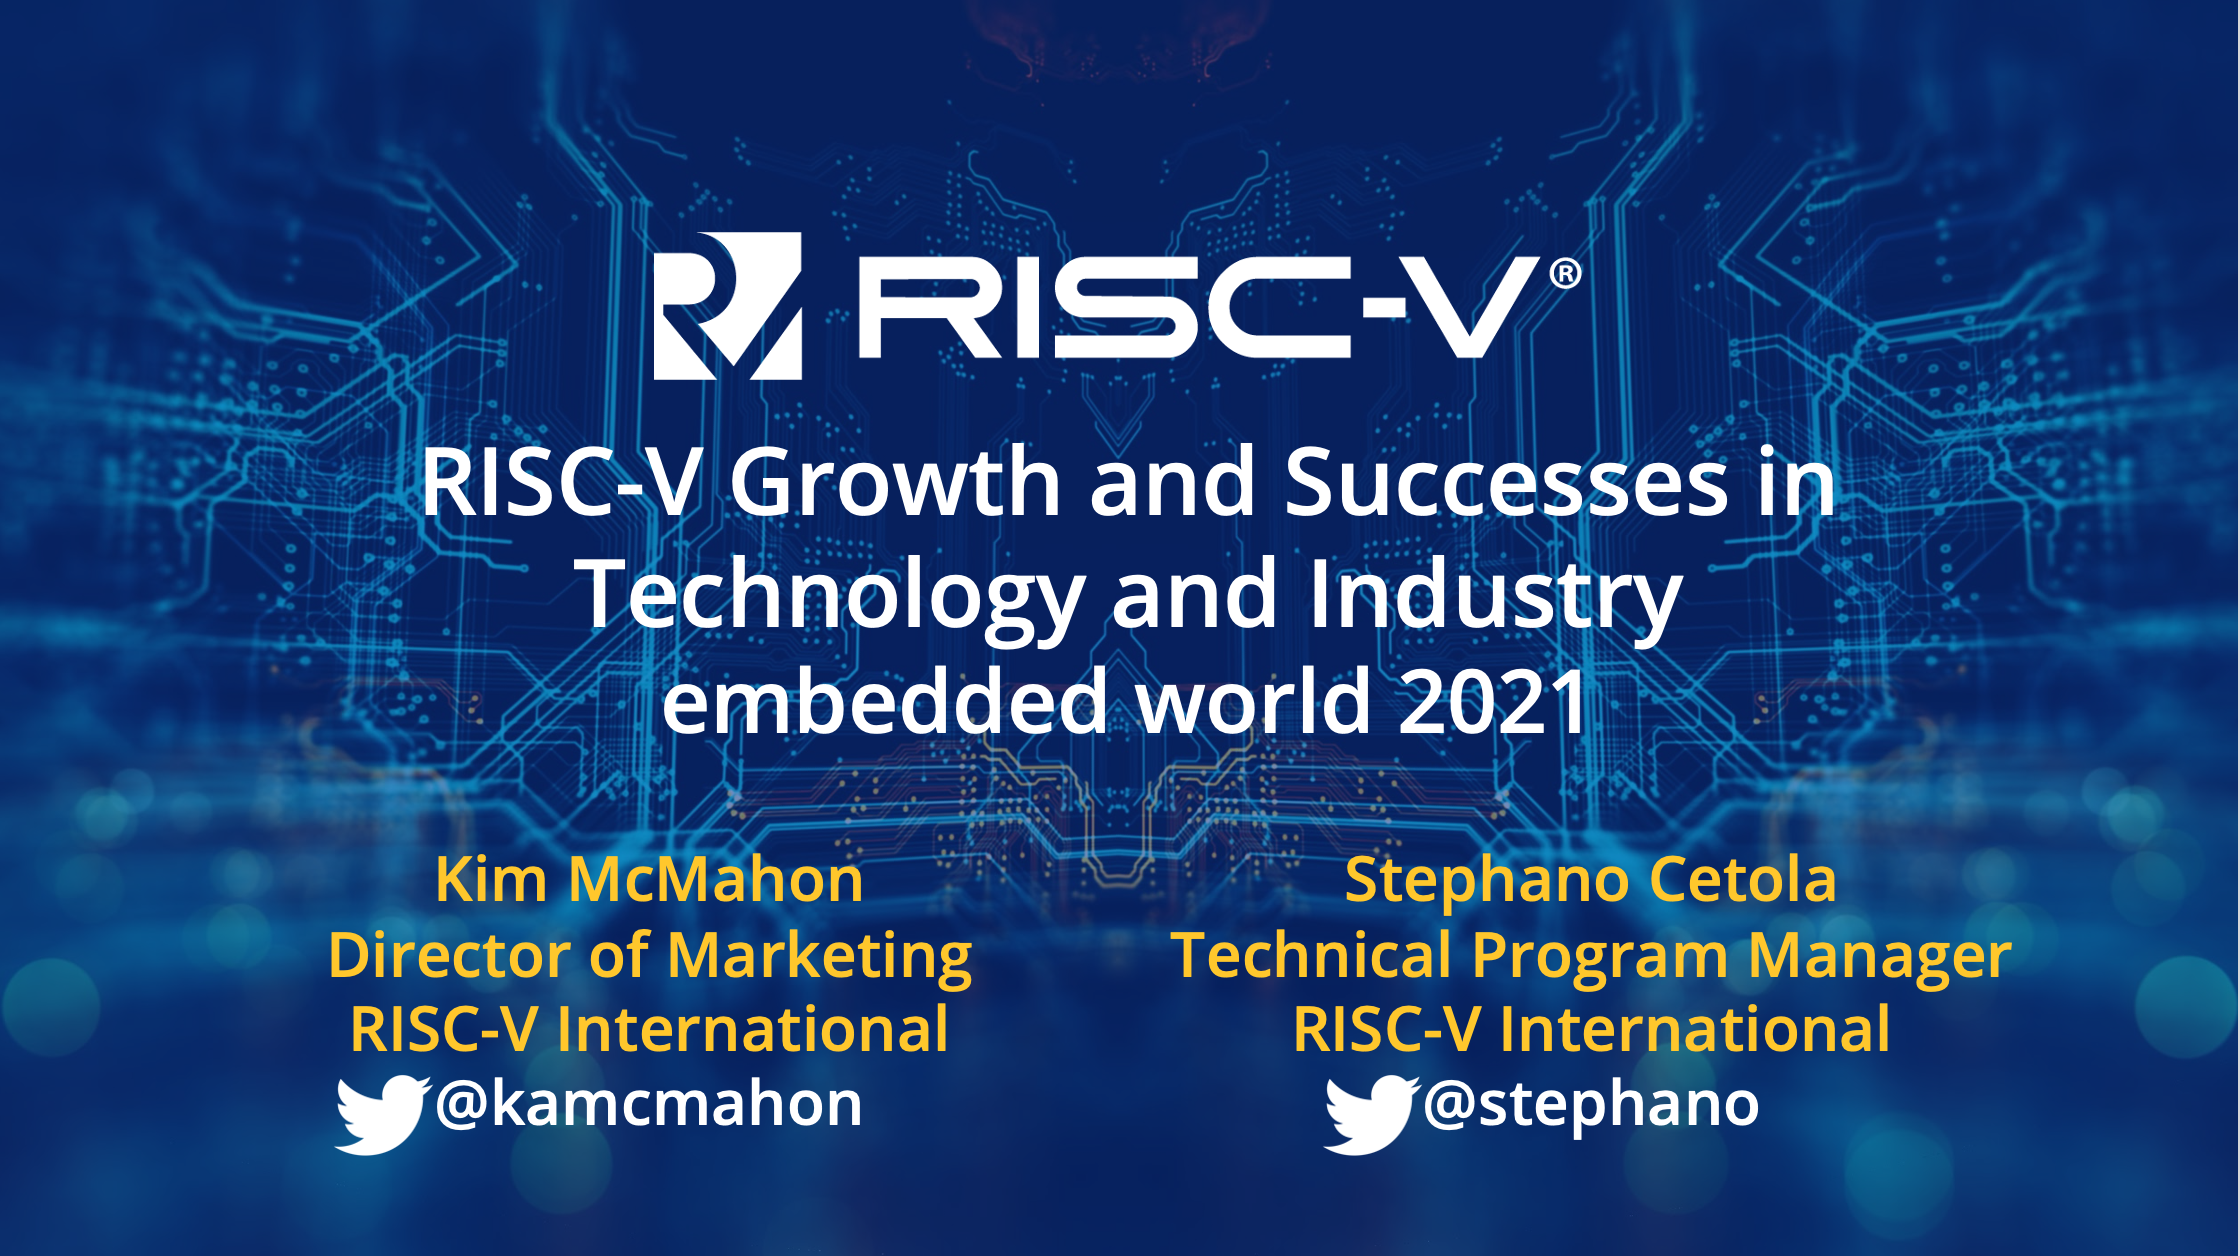 RISC-V growth and successes in technology and industry : embedded world 2021